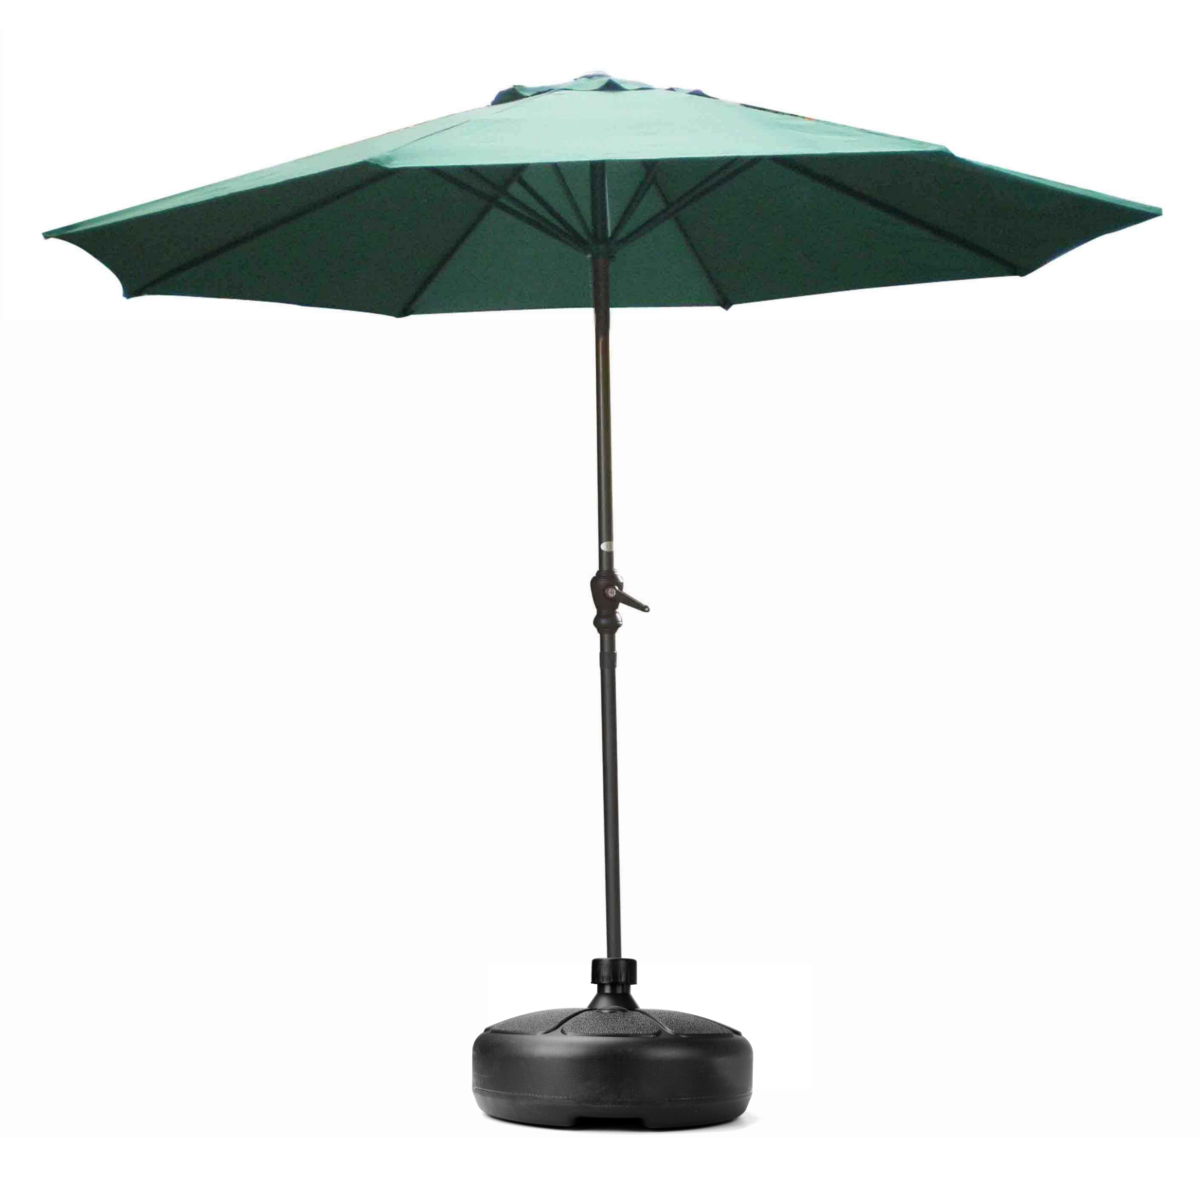 Outdoor Furniture Parasol Garden Umbrella Stand Round Patio Umbrella Bases  Foundation Billboard Holder Sun Shelter Accessories In Sun Shelter From  Sports ...